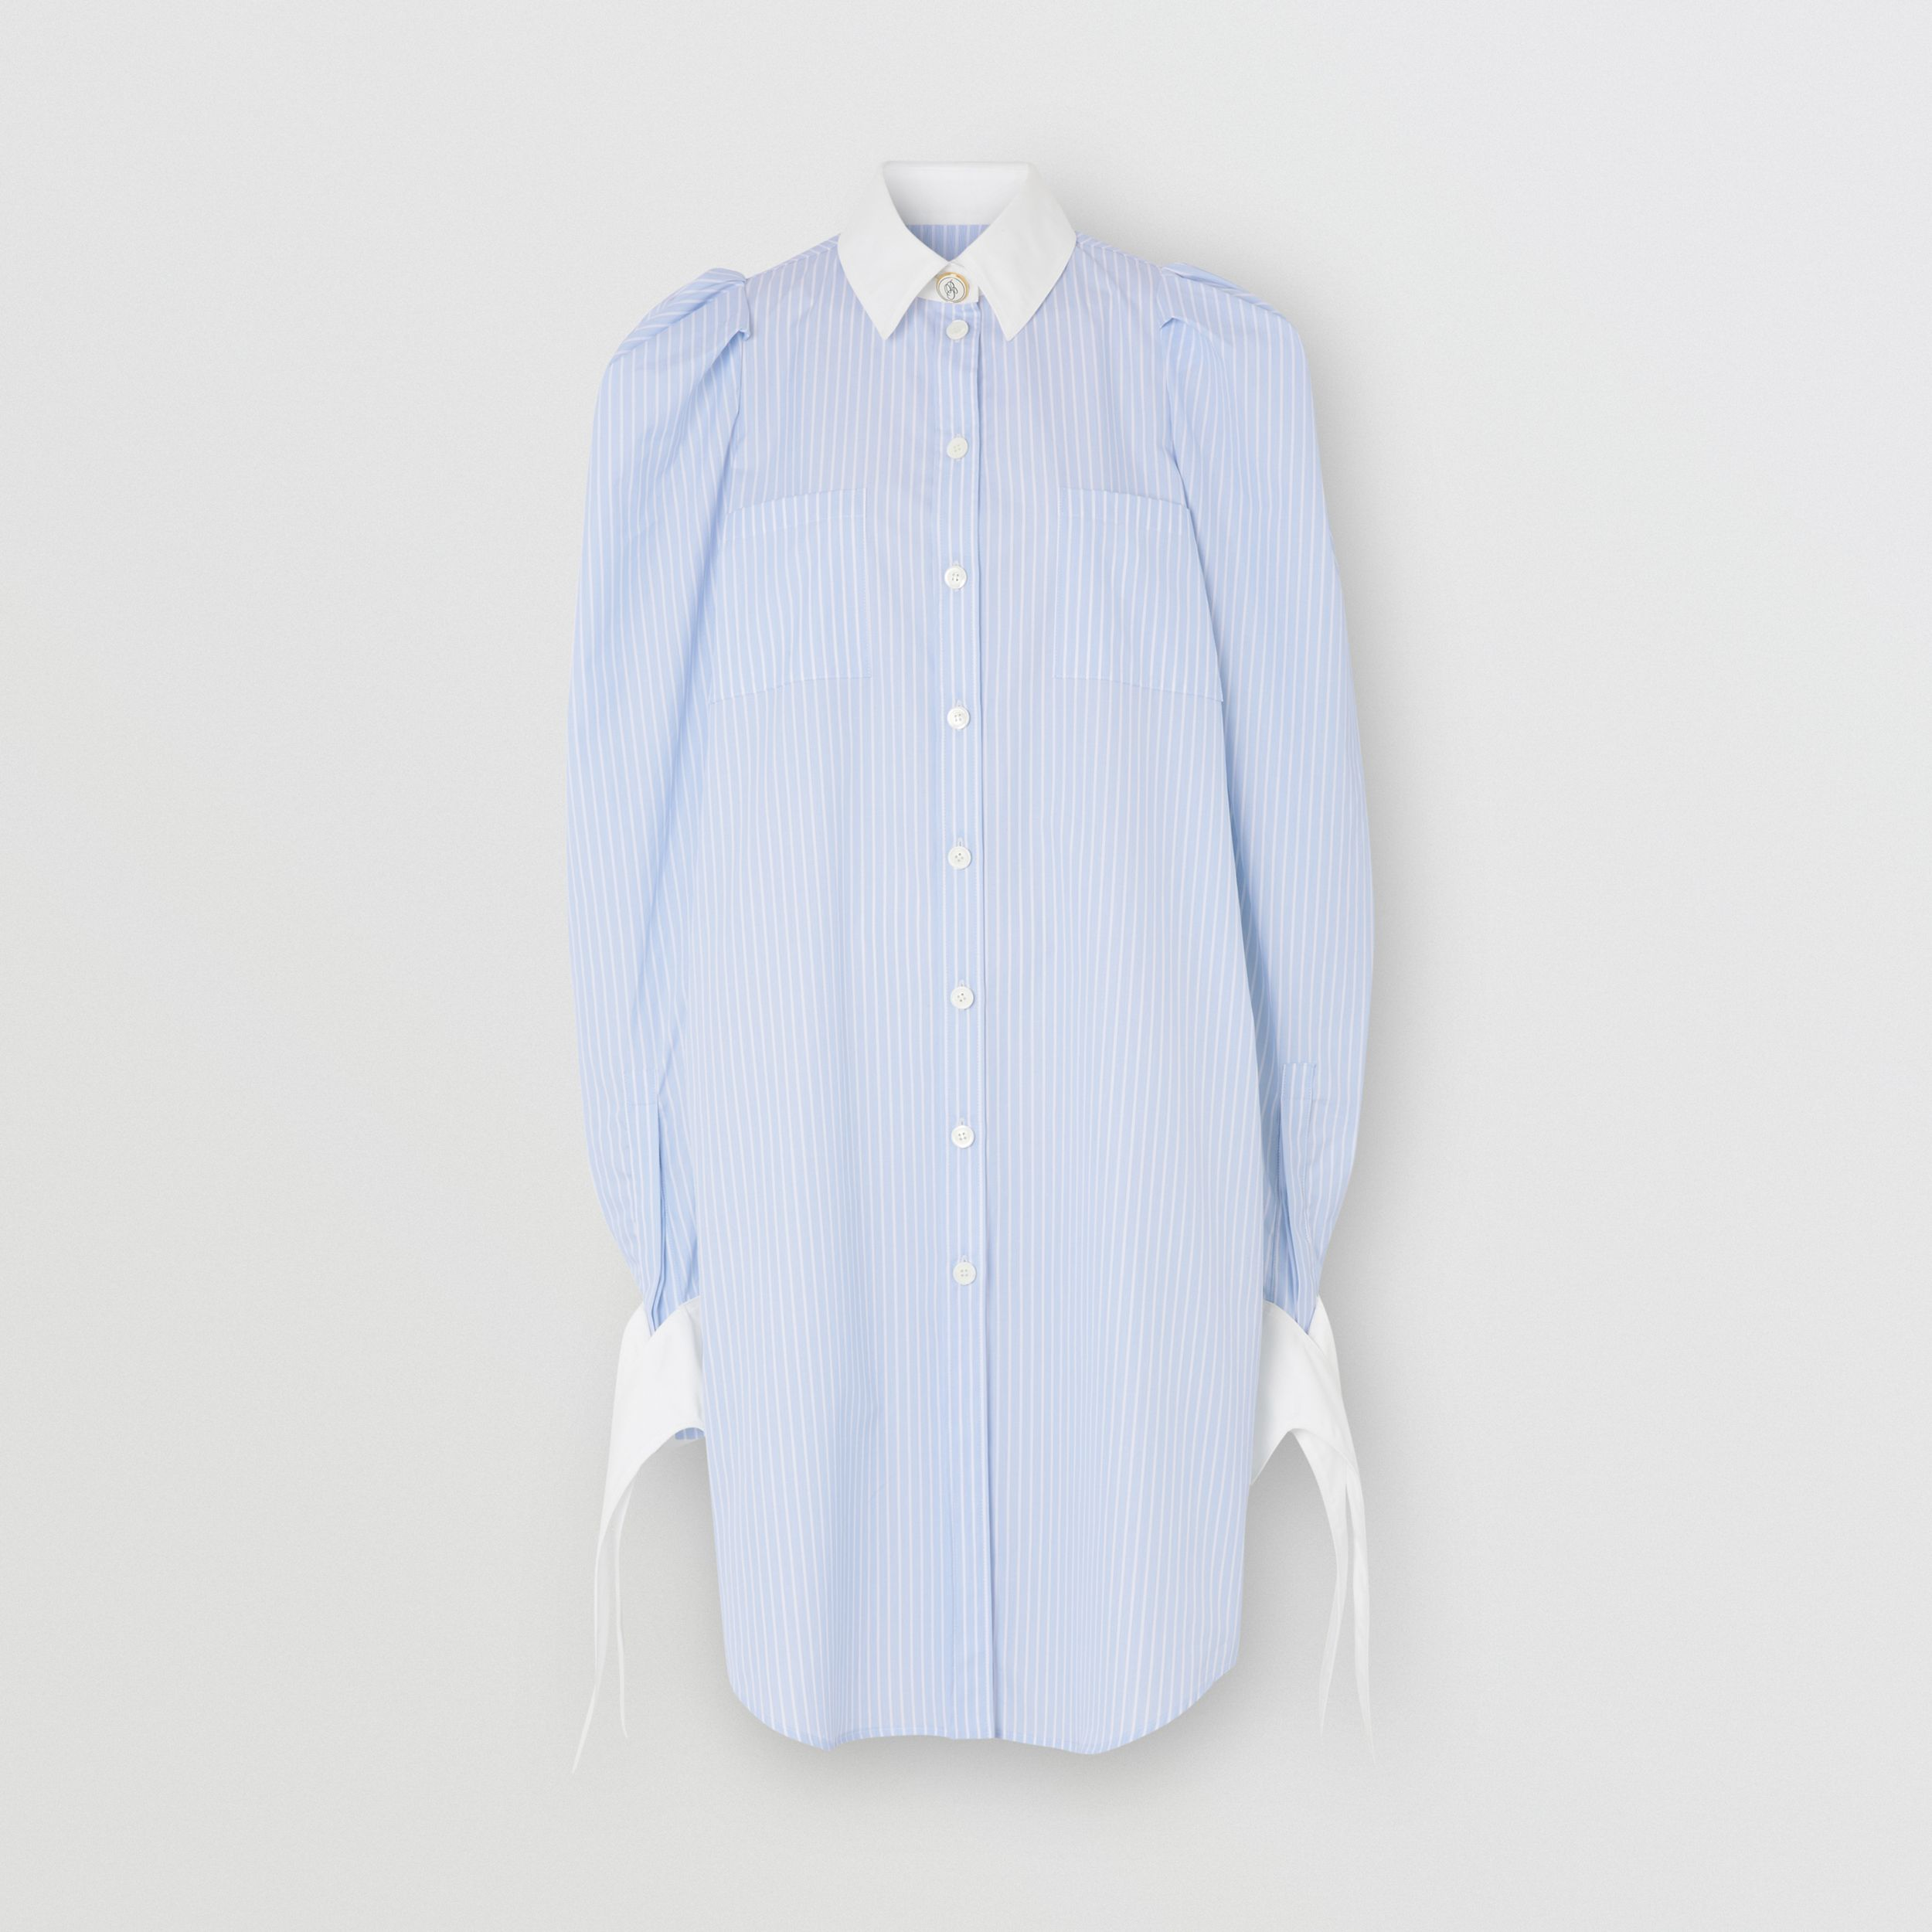 Striped Cotton Poplin Shirt Dress in Pale Blue - Women | Burberry Canada - 4